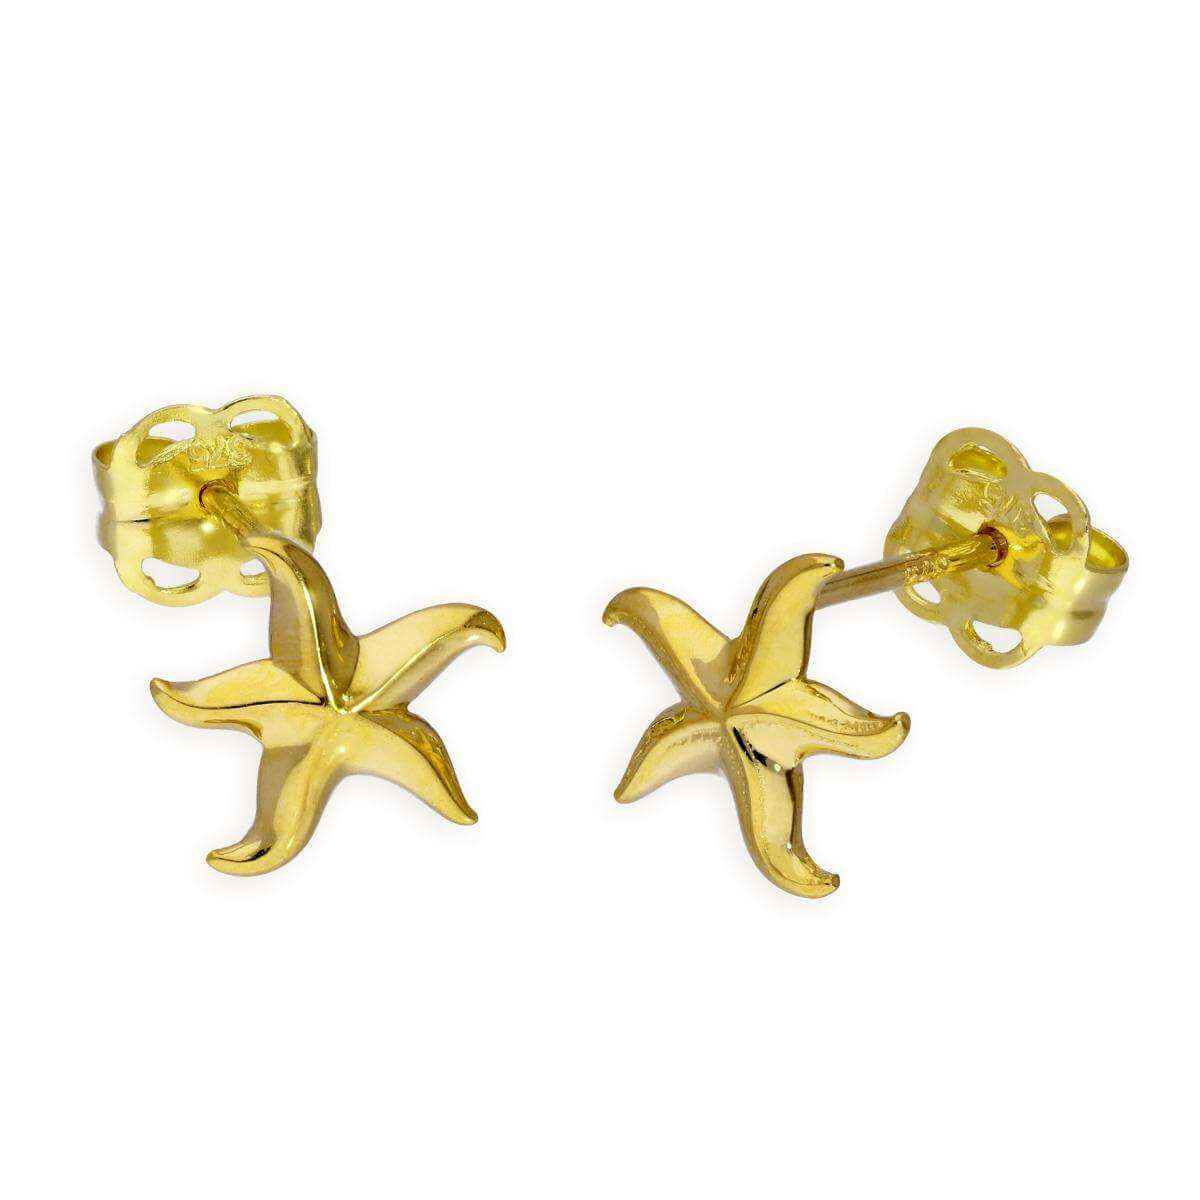 9ct Gold Starfish Stud Earrings